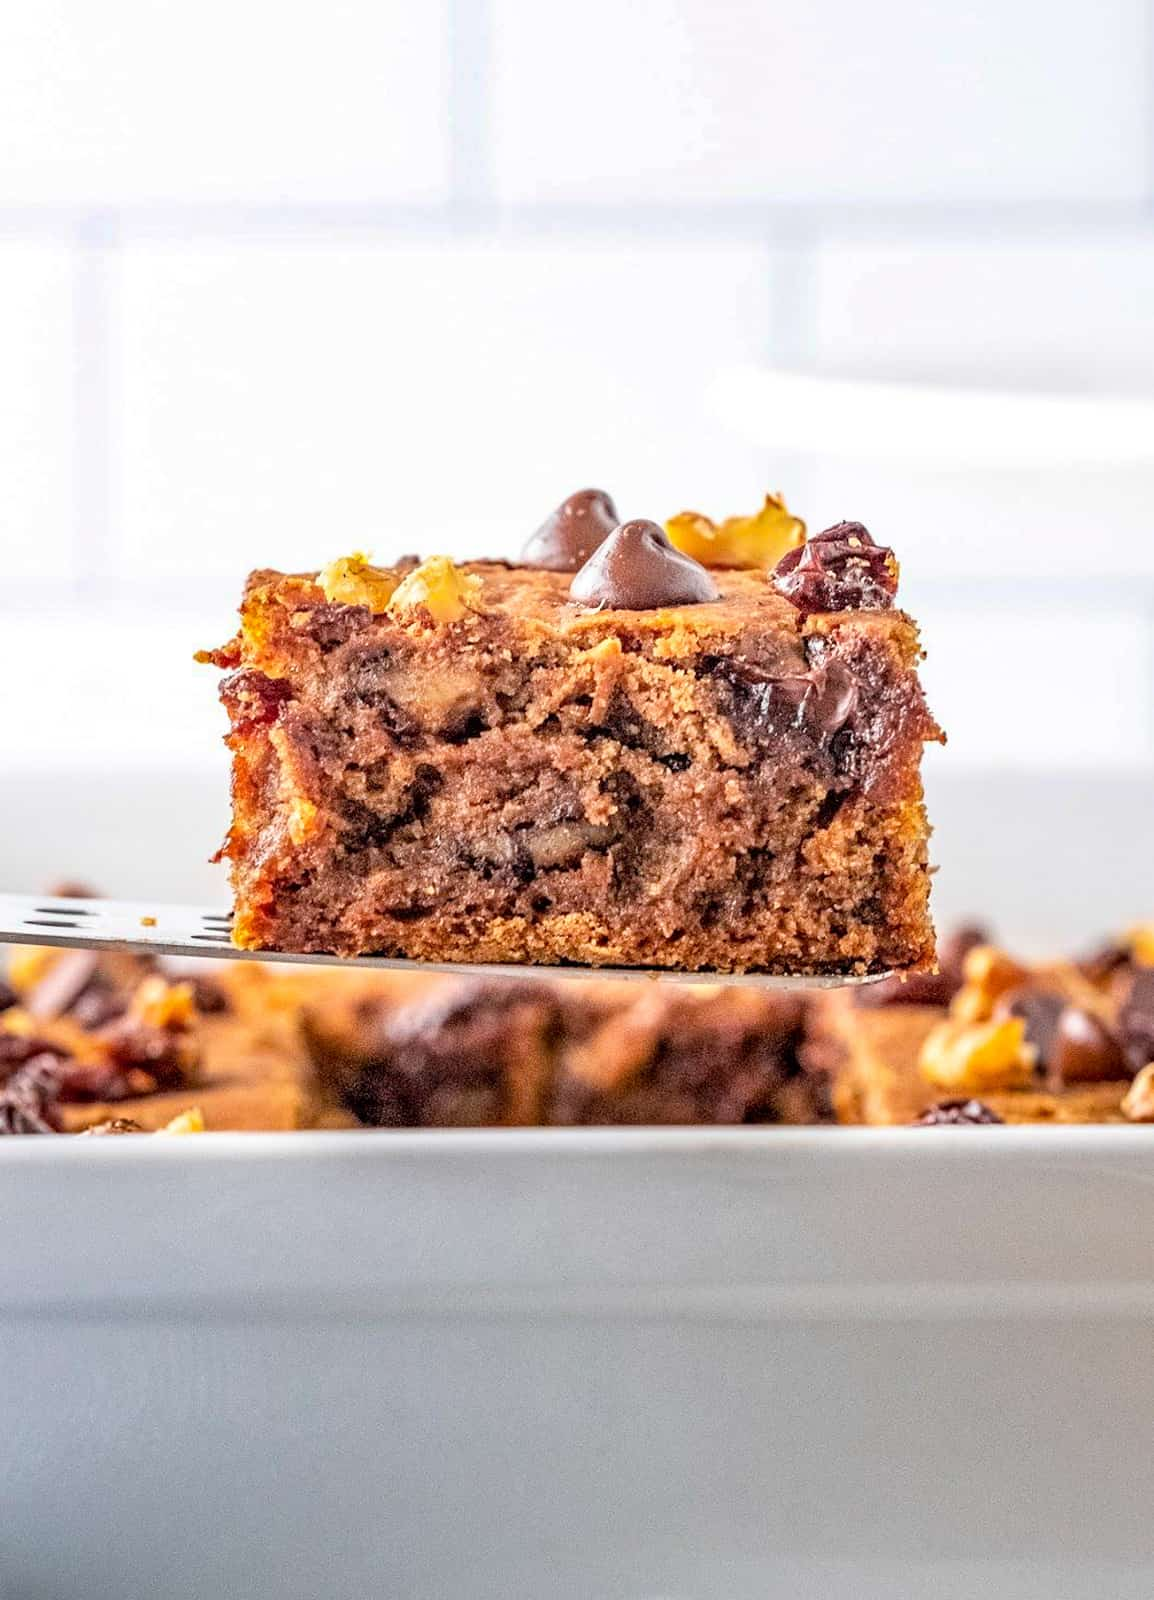 Cake server holding up a slice of the Vintage Chocolate Chip Applesauce Cake out of pan.